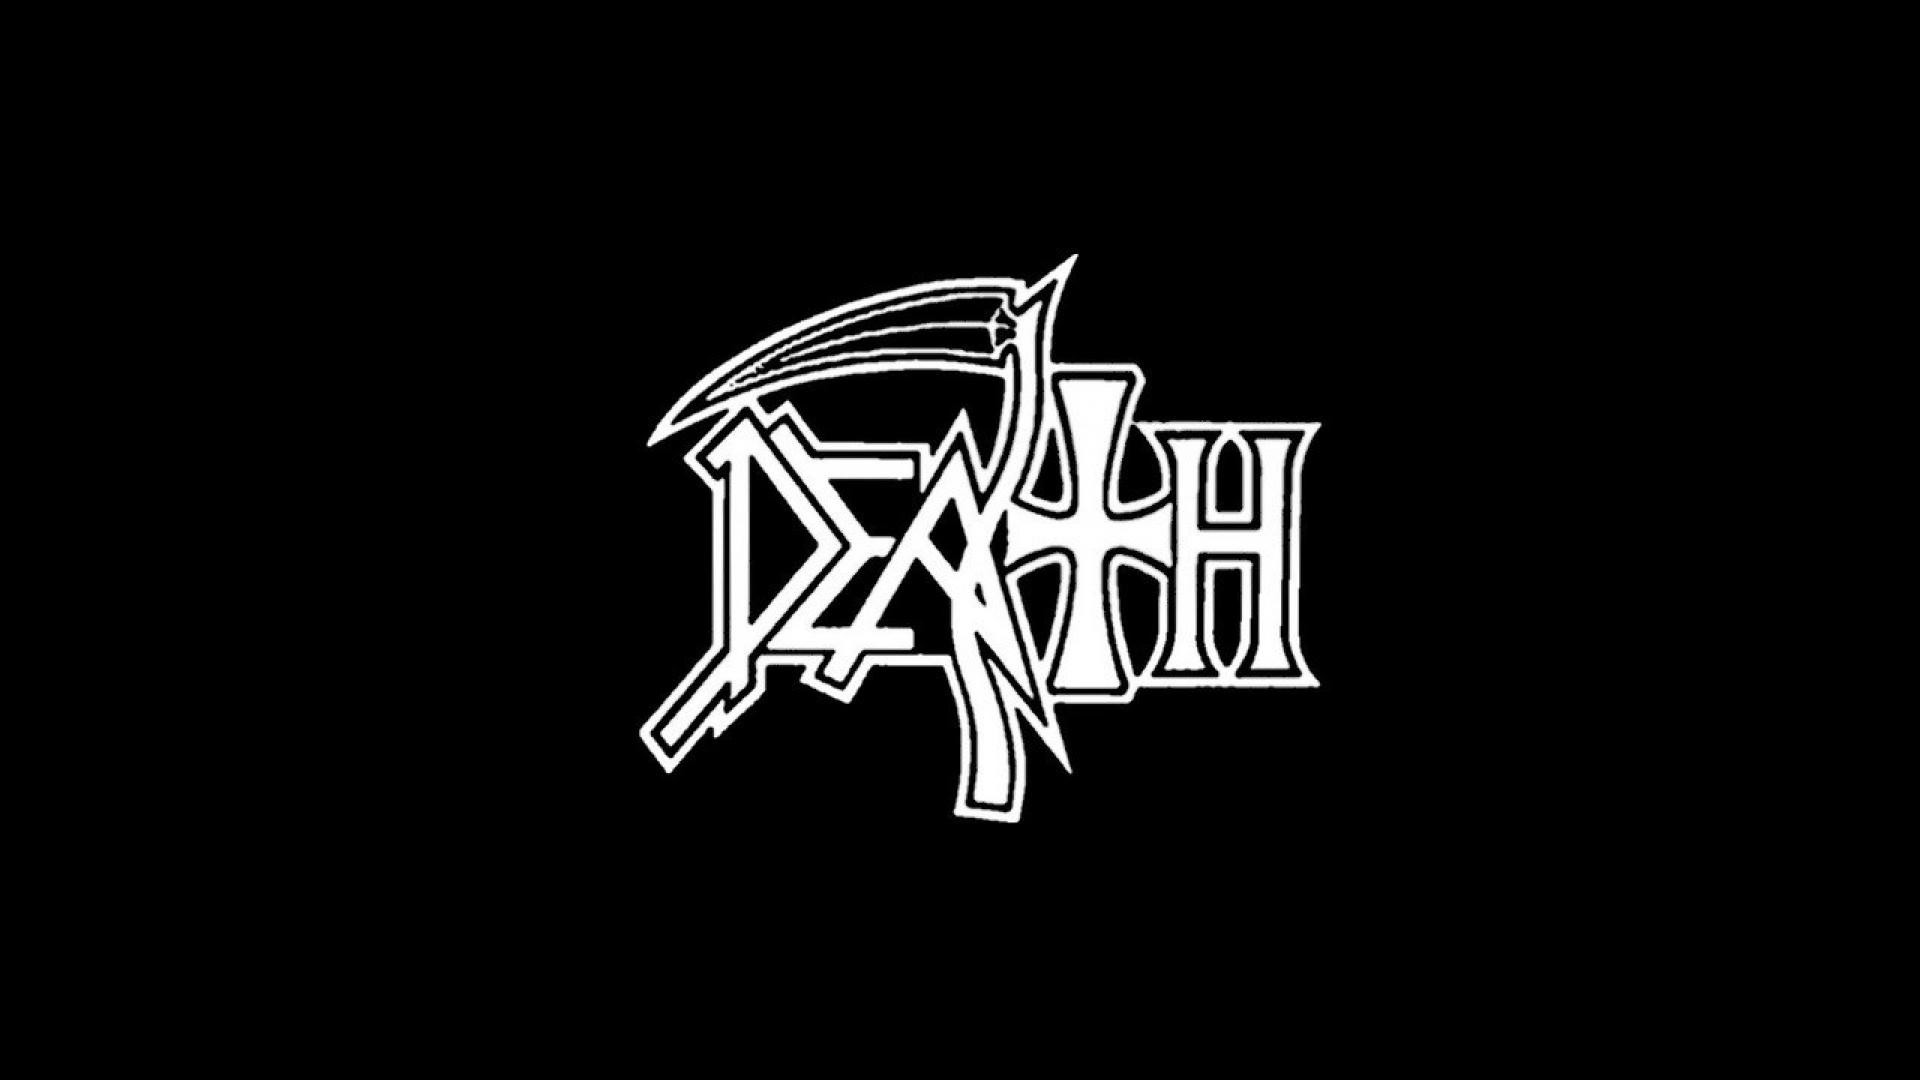 Black Glitter Wallpaper Death Band Wallpaper 50 Images